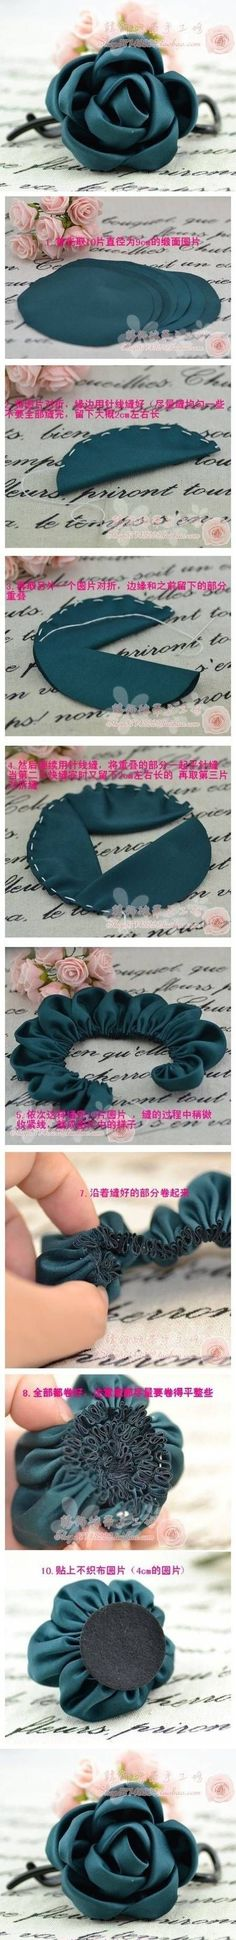 DIY Fabric Roses Pictures, Photos, and Images for Facebook, Tumblr, Pinterest, and Twitter